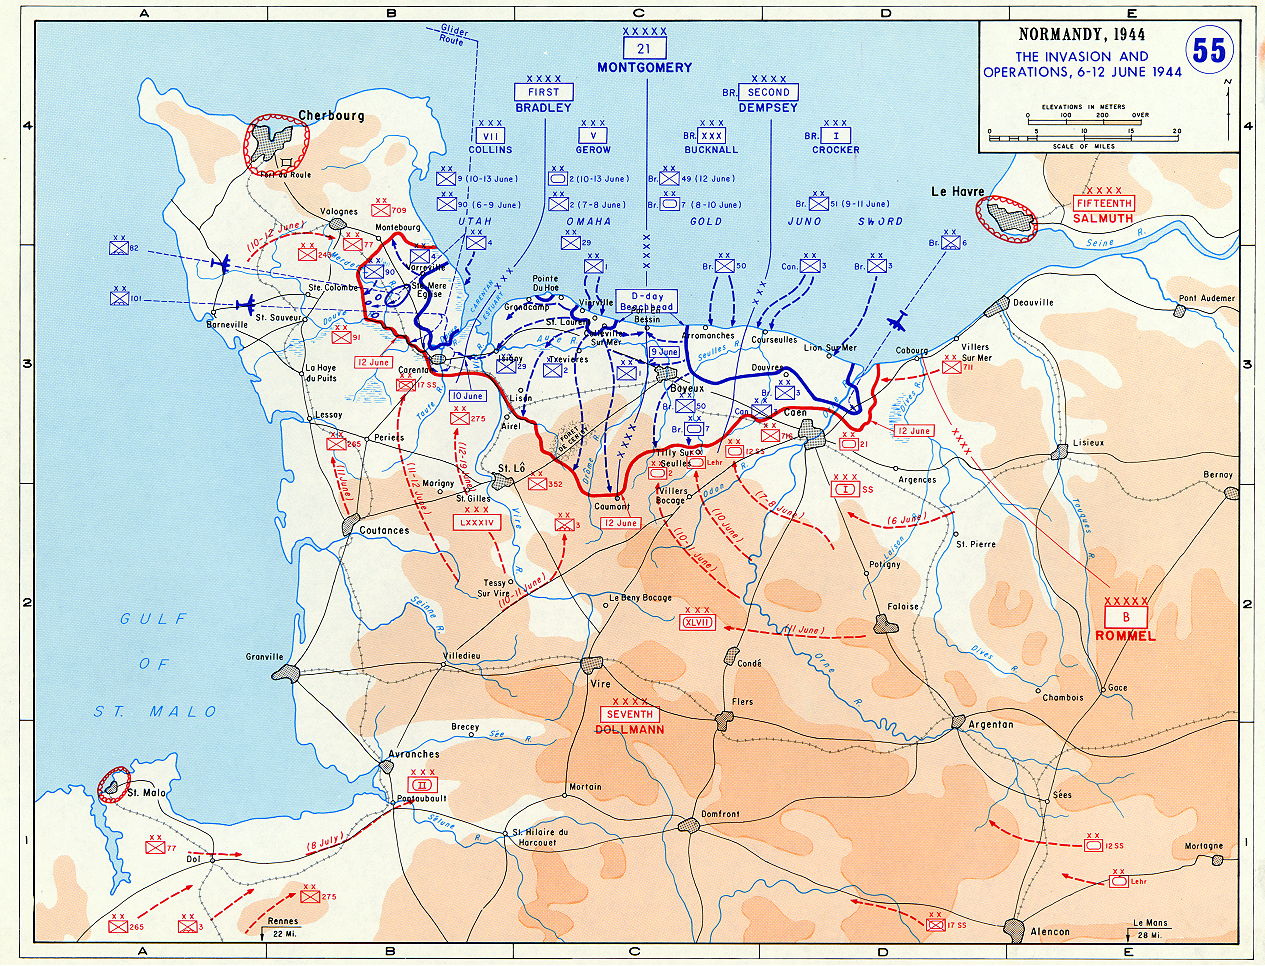 Normandy: The Invasion and Operations - June 6-12, 1944